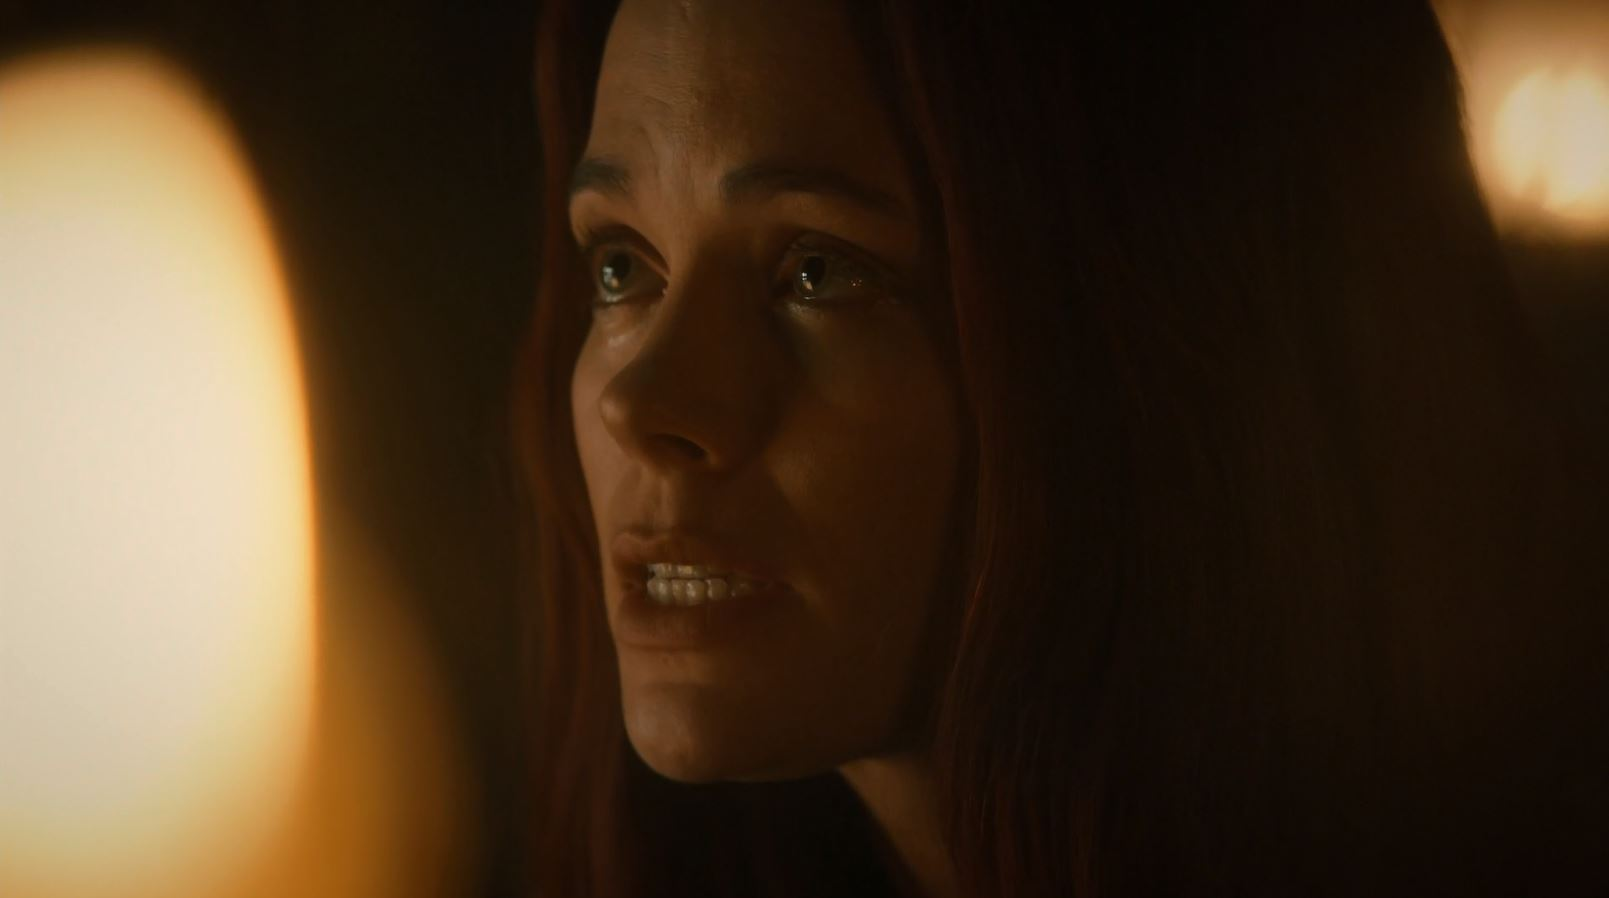 Sleepy Hollow S2Ep2 The Kindred Review - Katrina Crane played by Katia Winter